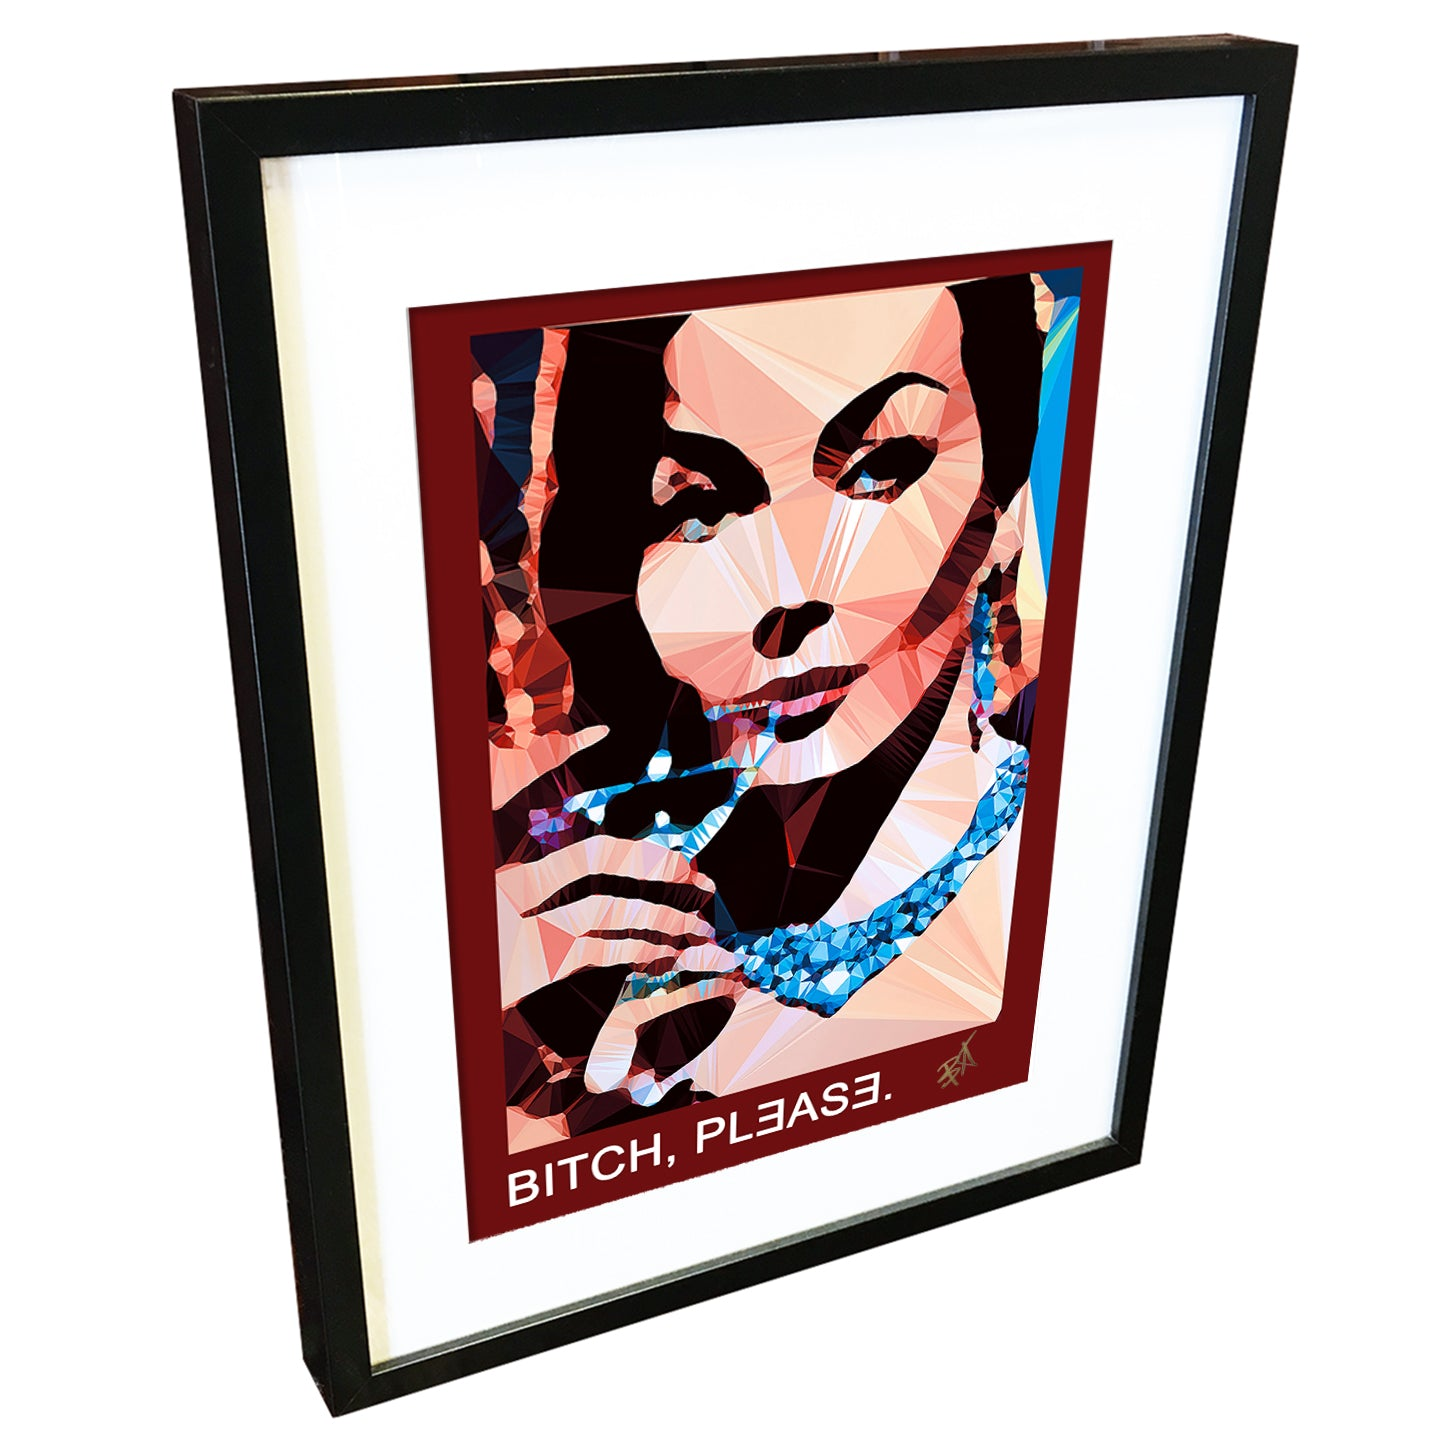 Bitch, Please by Baiba Auria - signed art print with quote - Egoiste Gallery - Art Gallery in Manchester City Centre